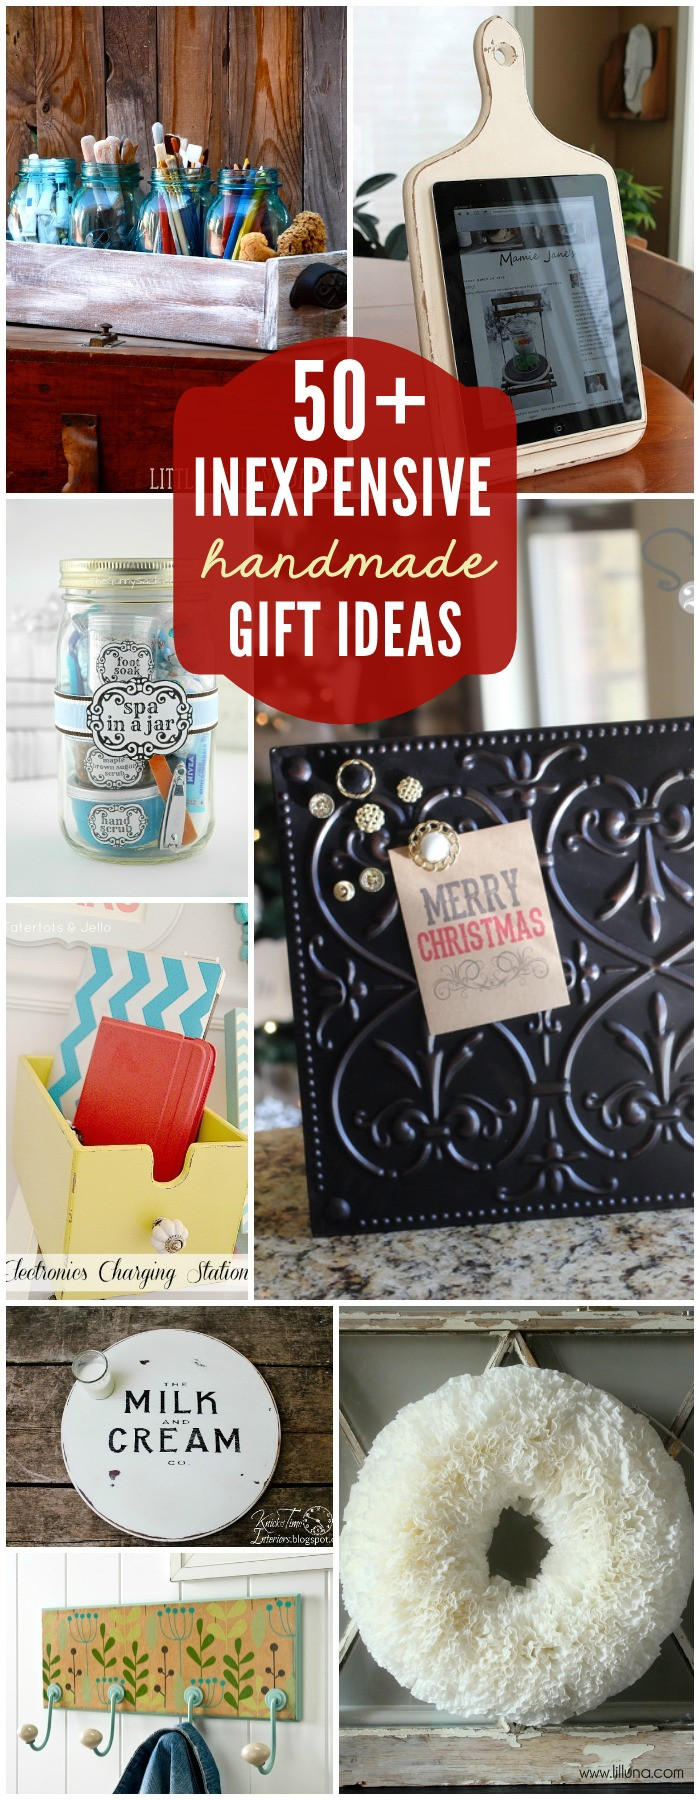 Best ideas about DIY Christmas Gift . Save or Pin 50 Inexpensive DIY Gift Ideas Now.